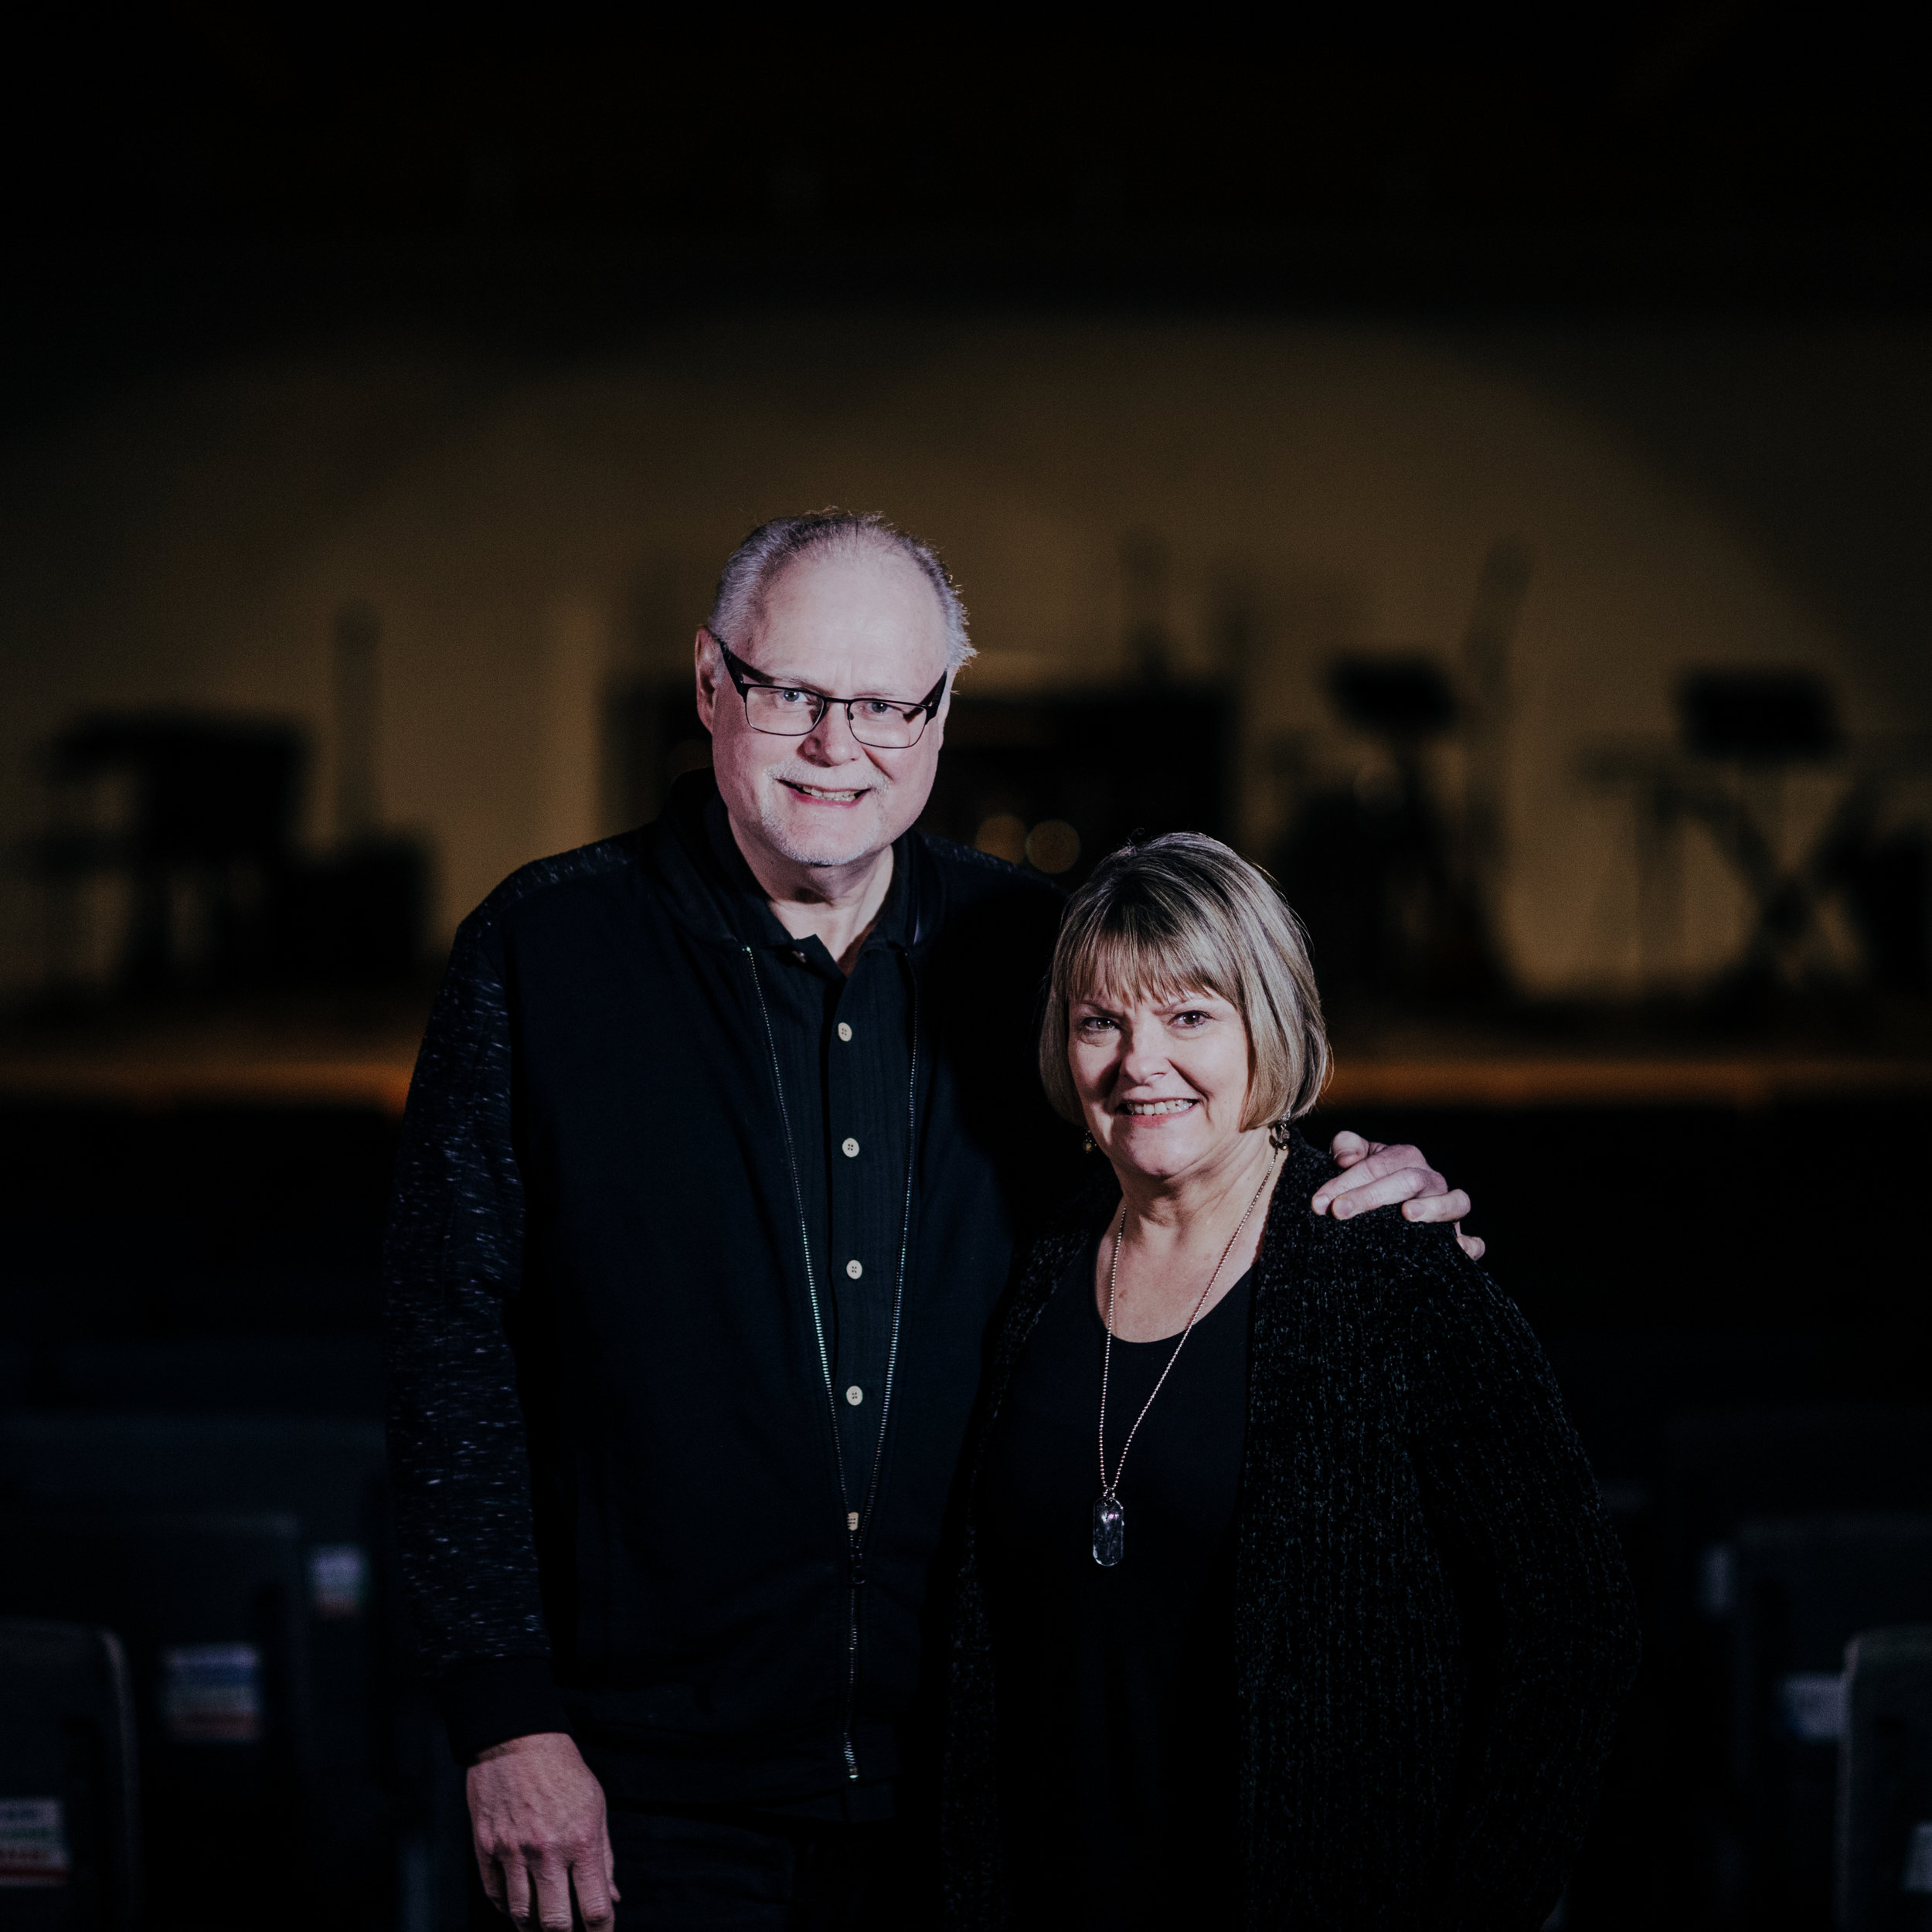 Bryan and Anna Johnson - Care Pastors